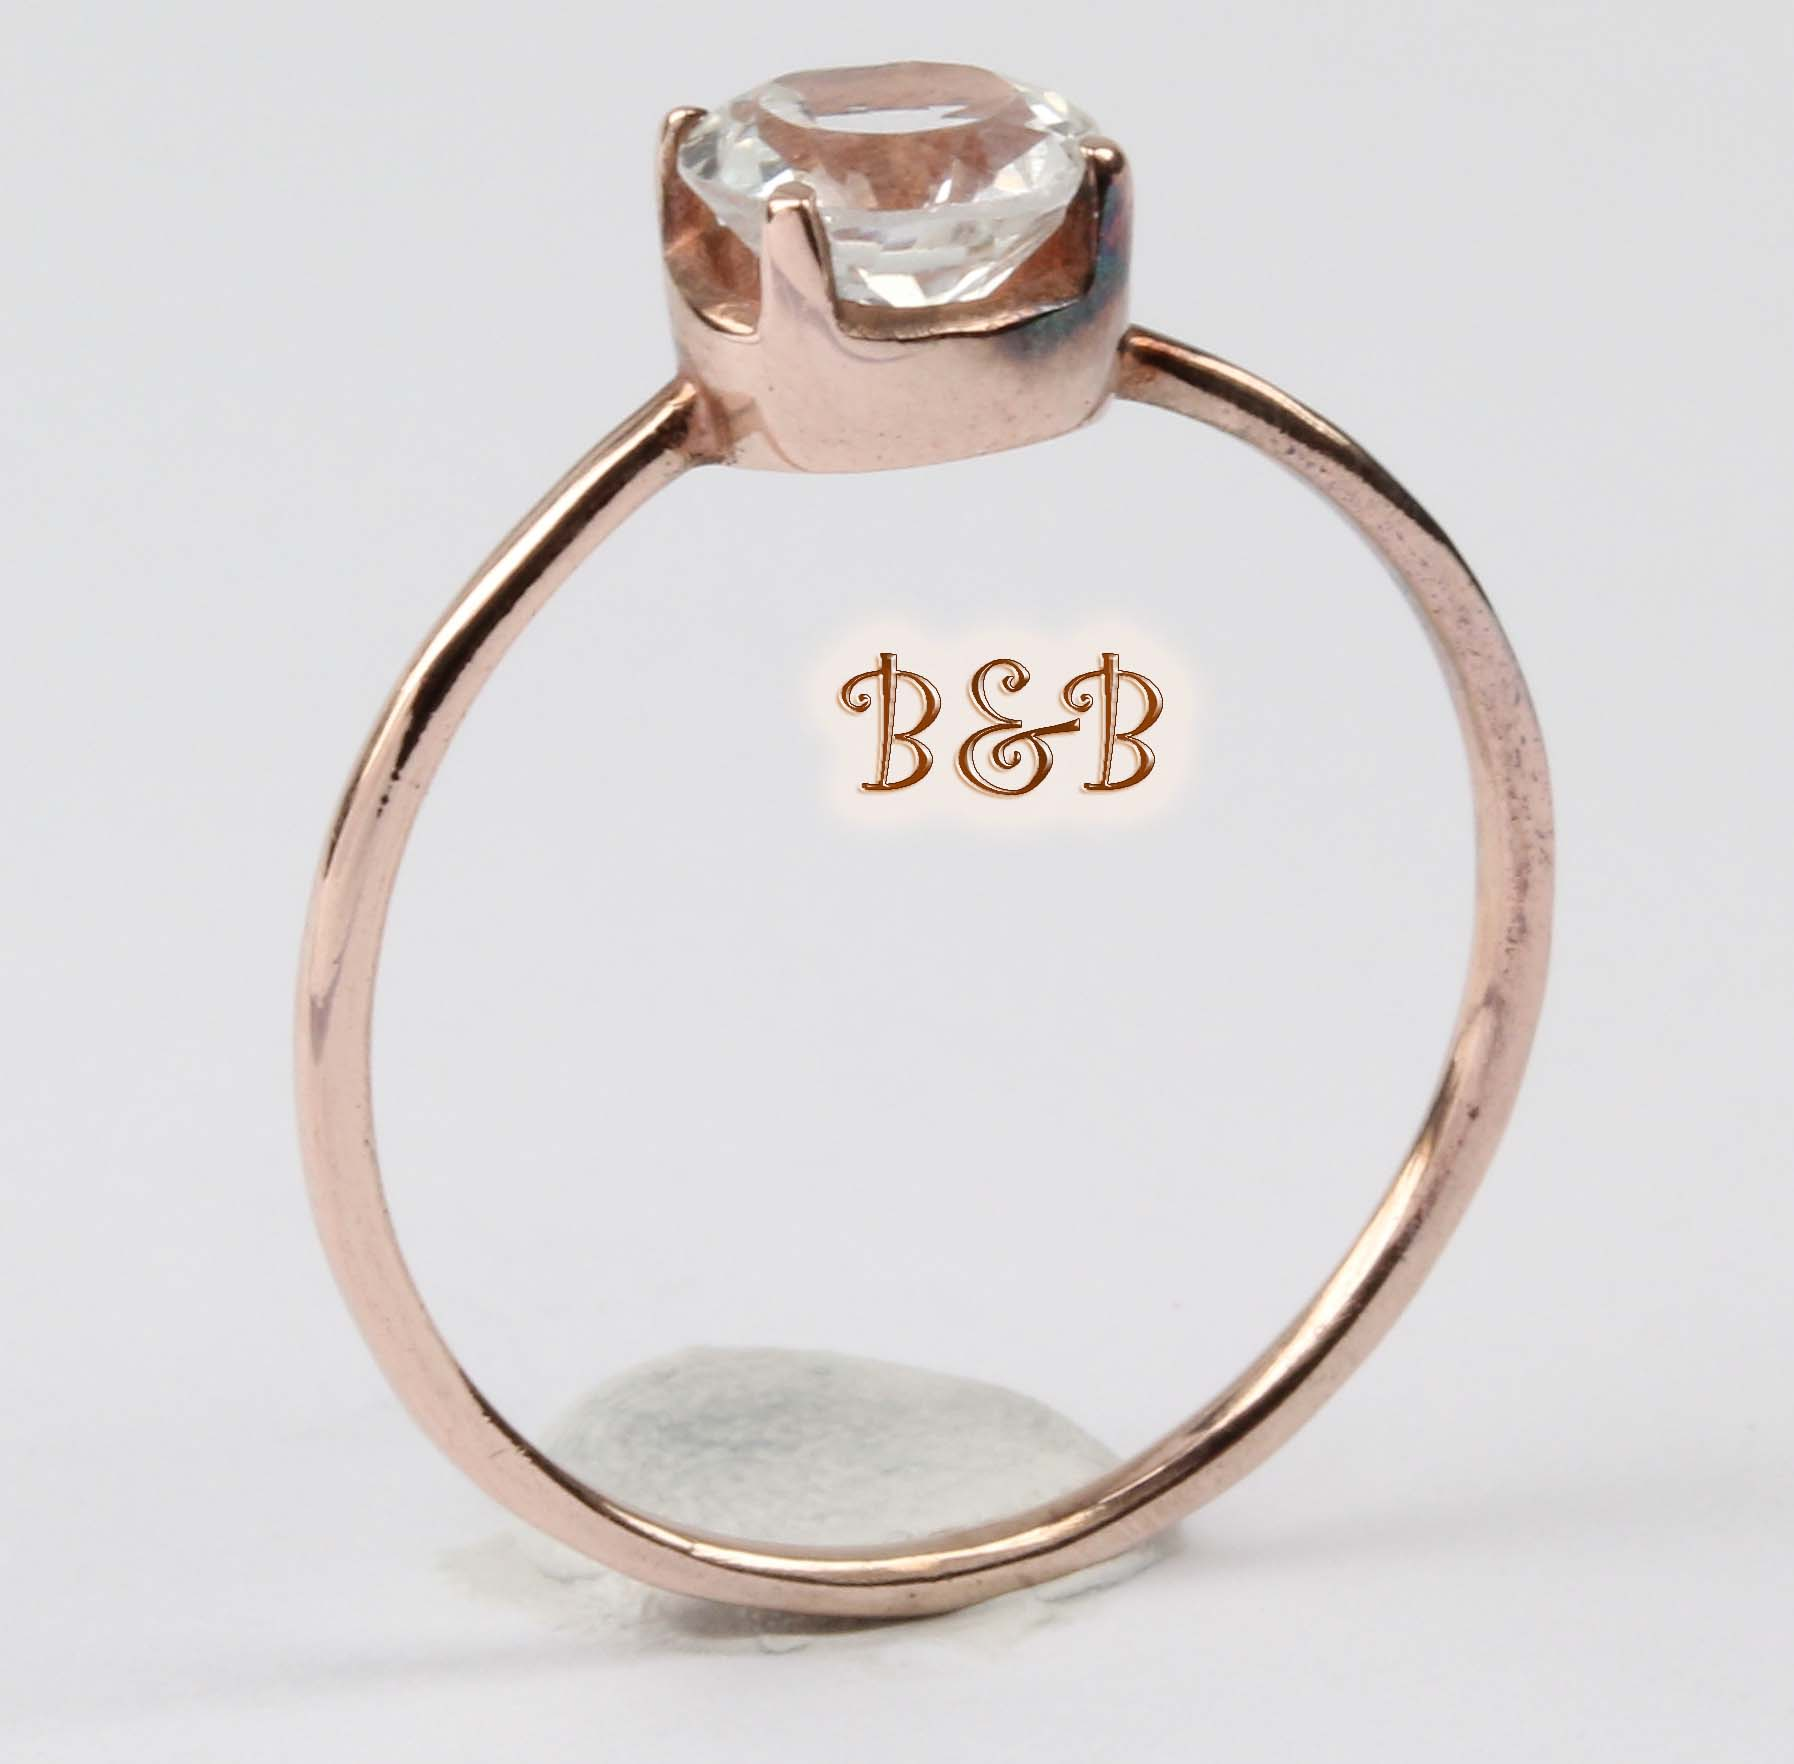 Silver ring_bb13.1